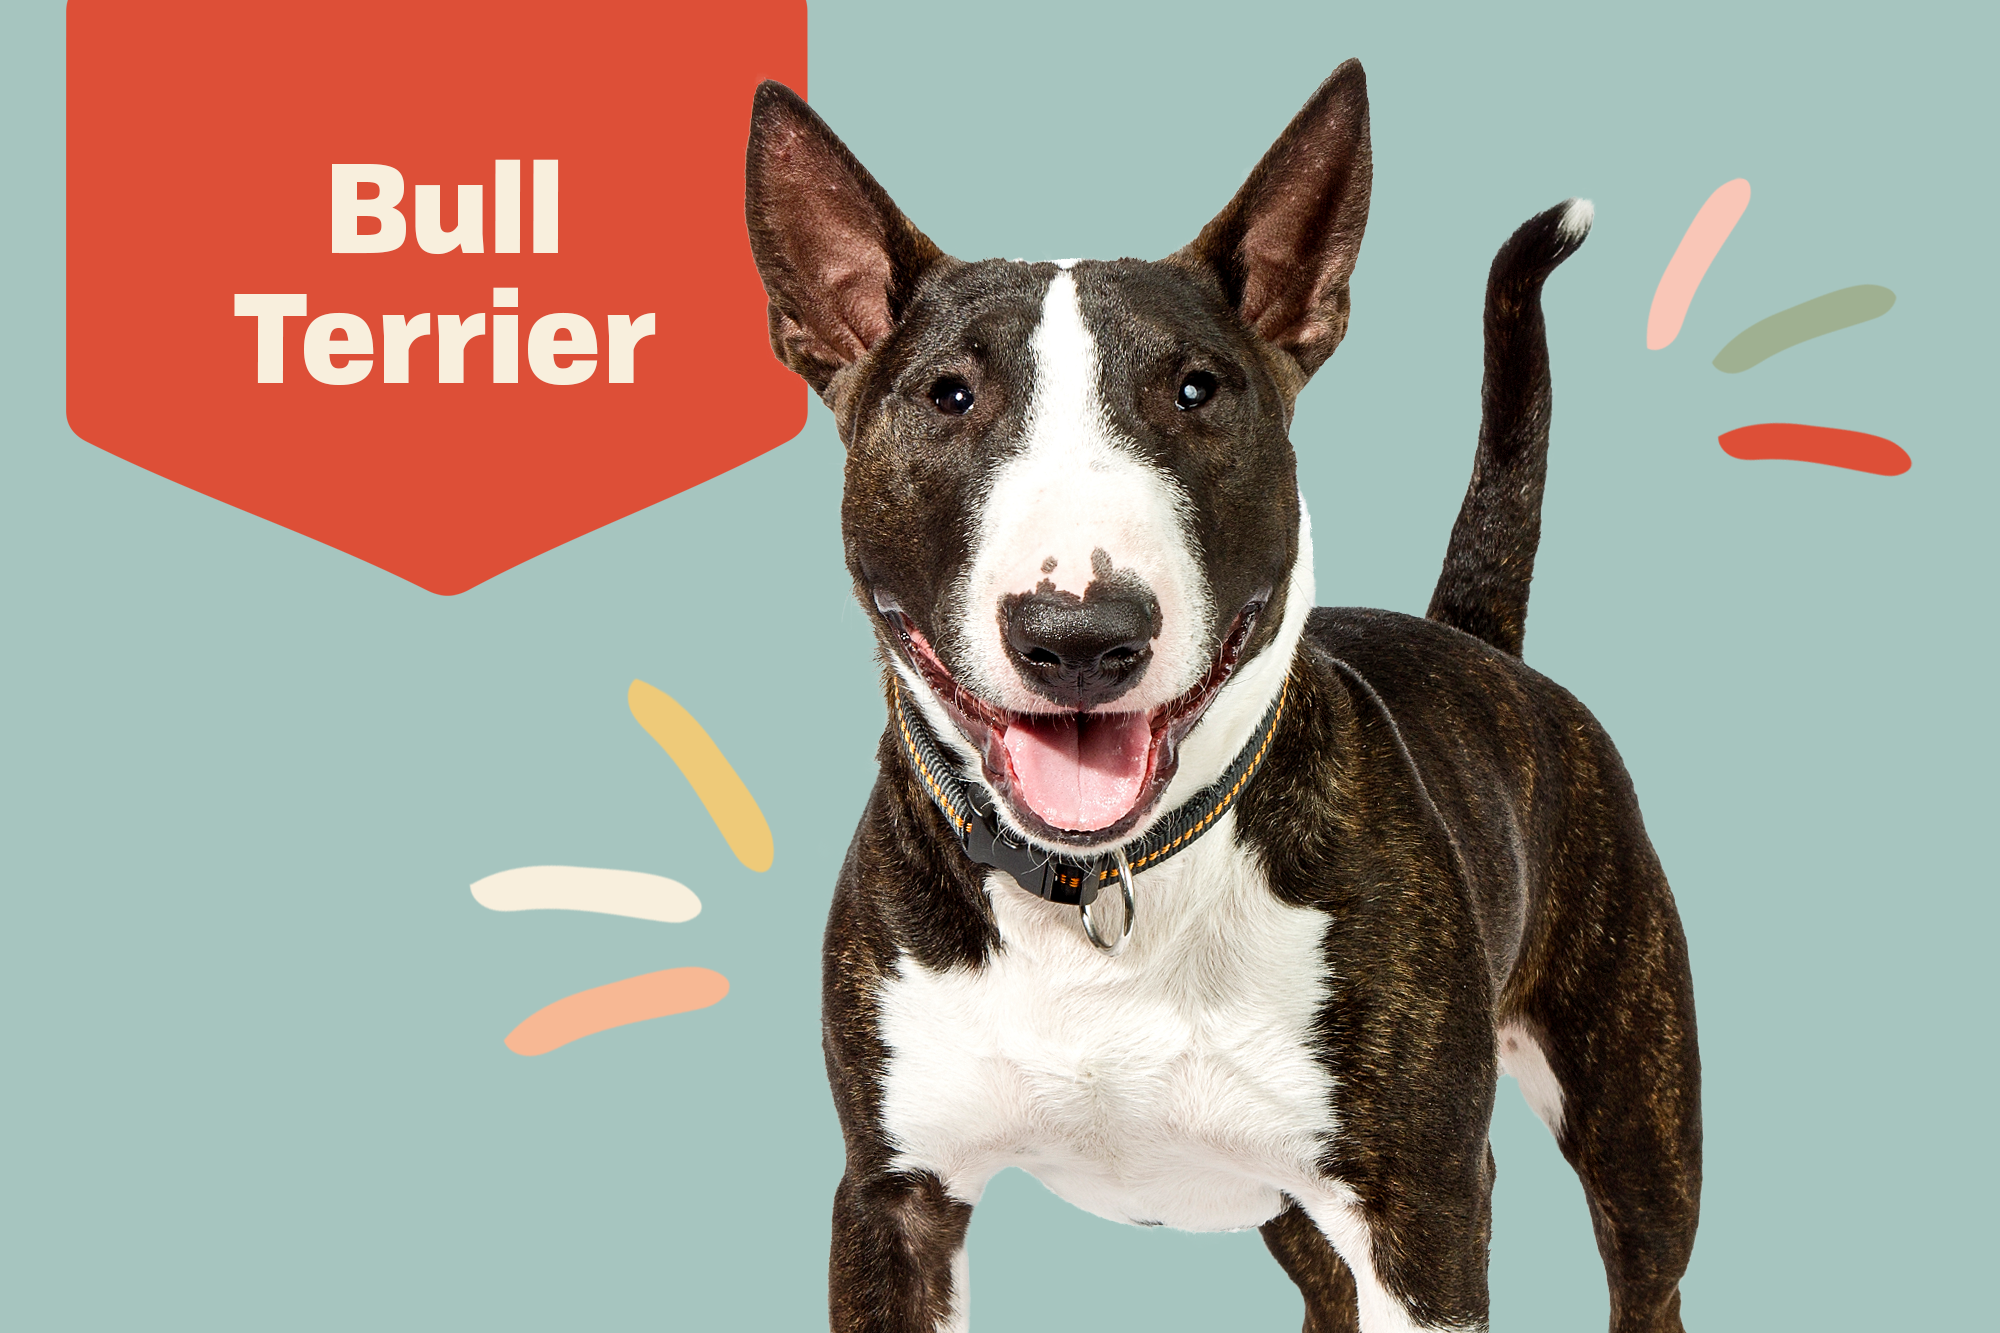 Bull Terrier Breed Photo